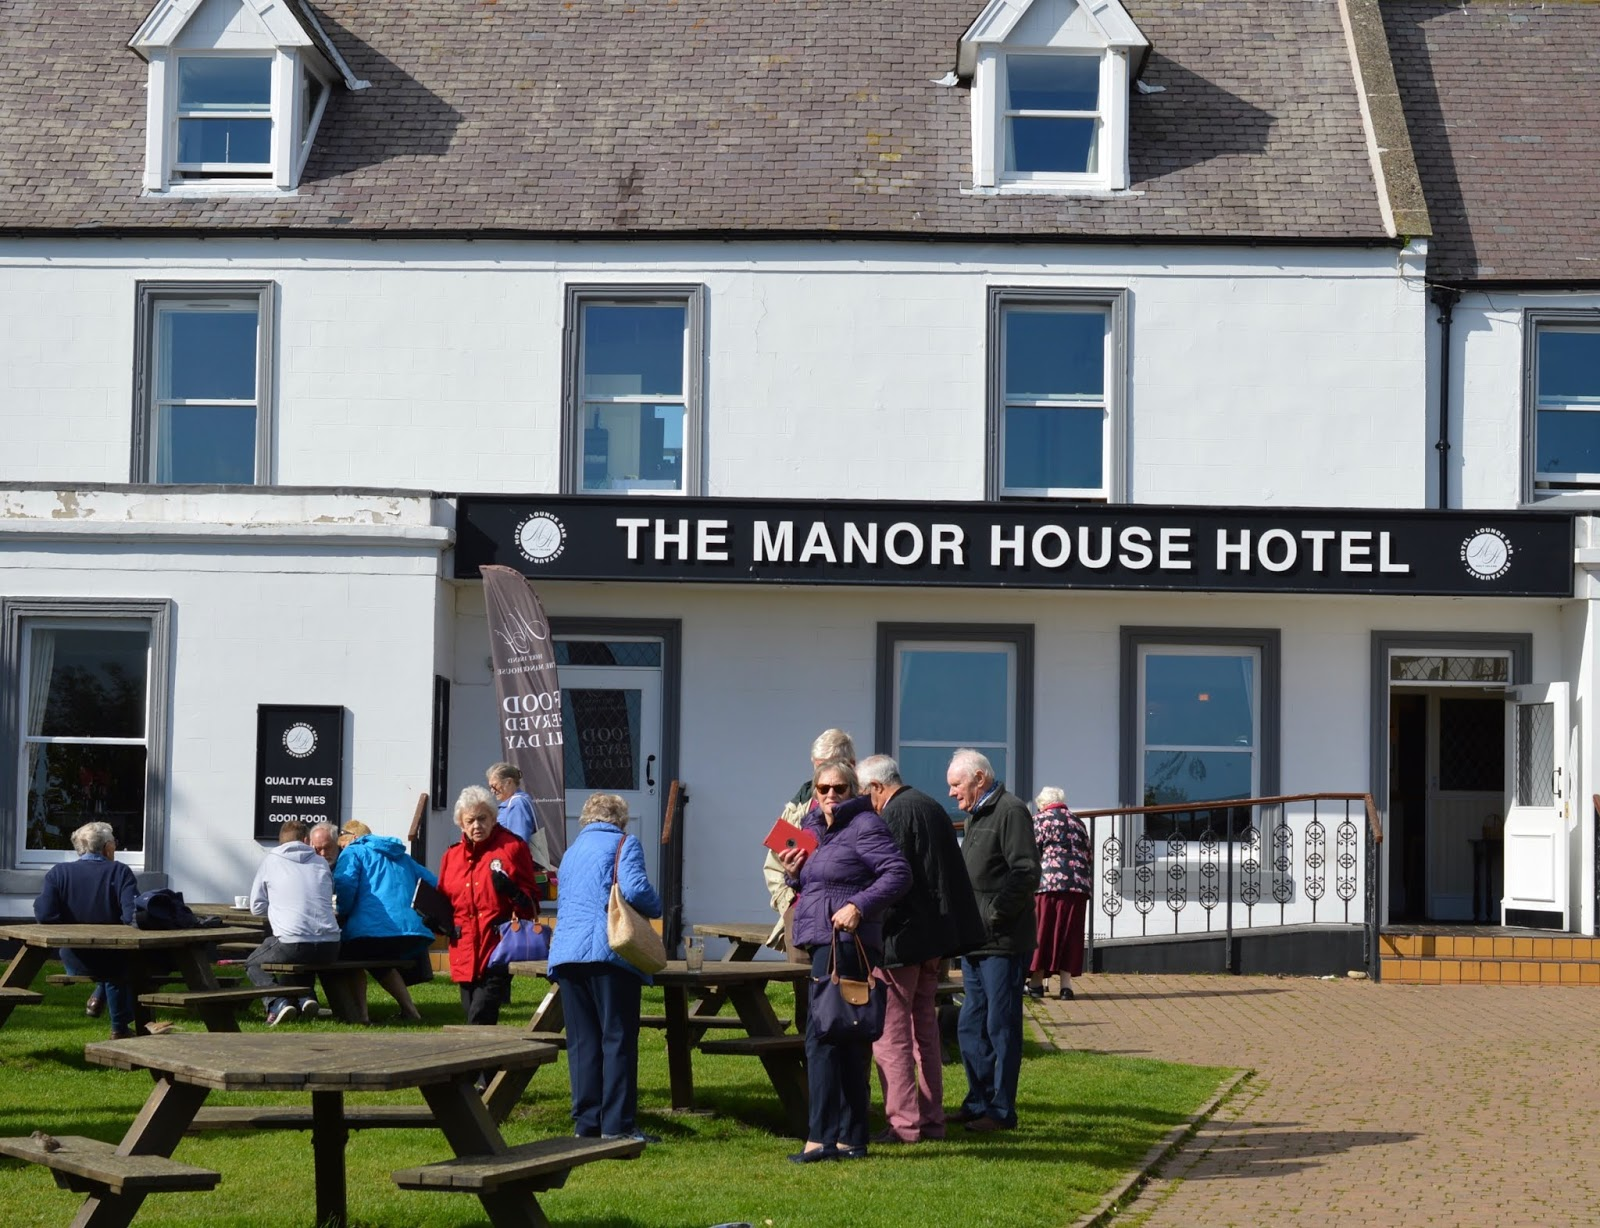 The Holy Island of Lindisfarne, Northumberland - what to see and do during a half day visit - the manor house hotel and beer garden